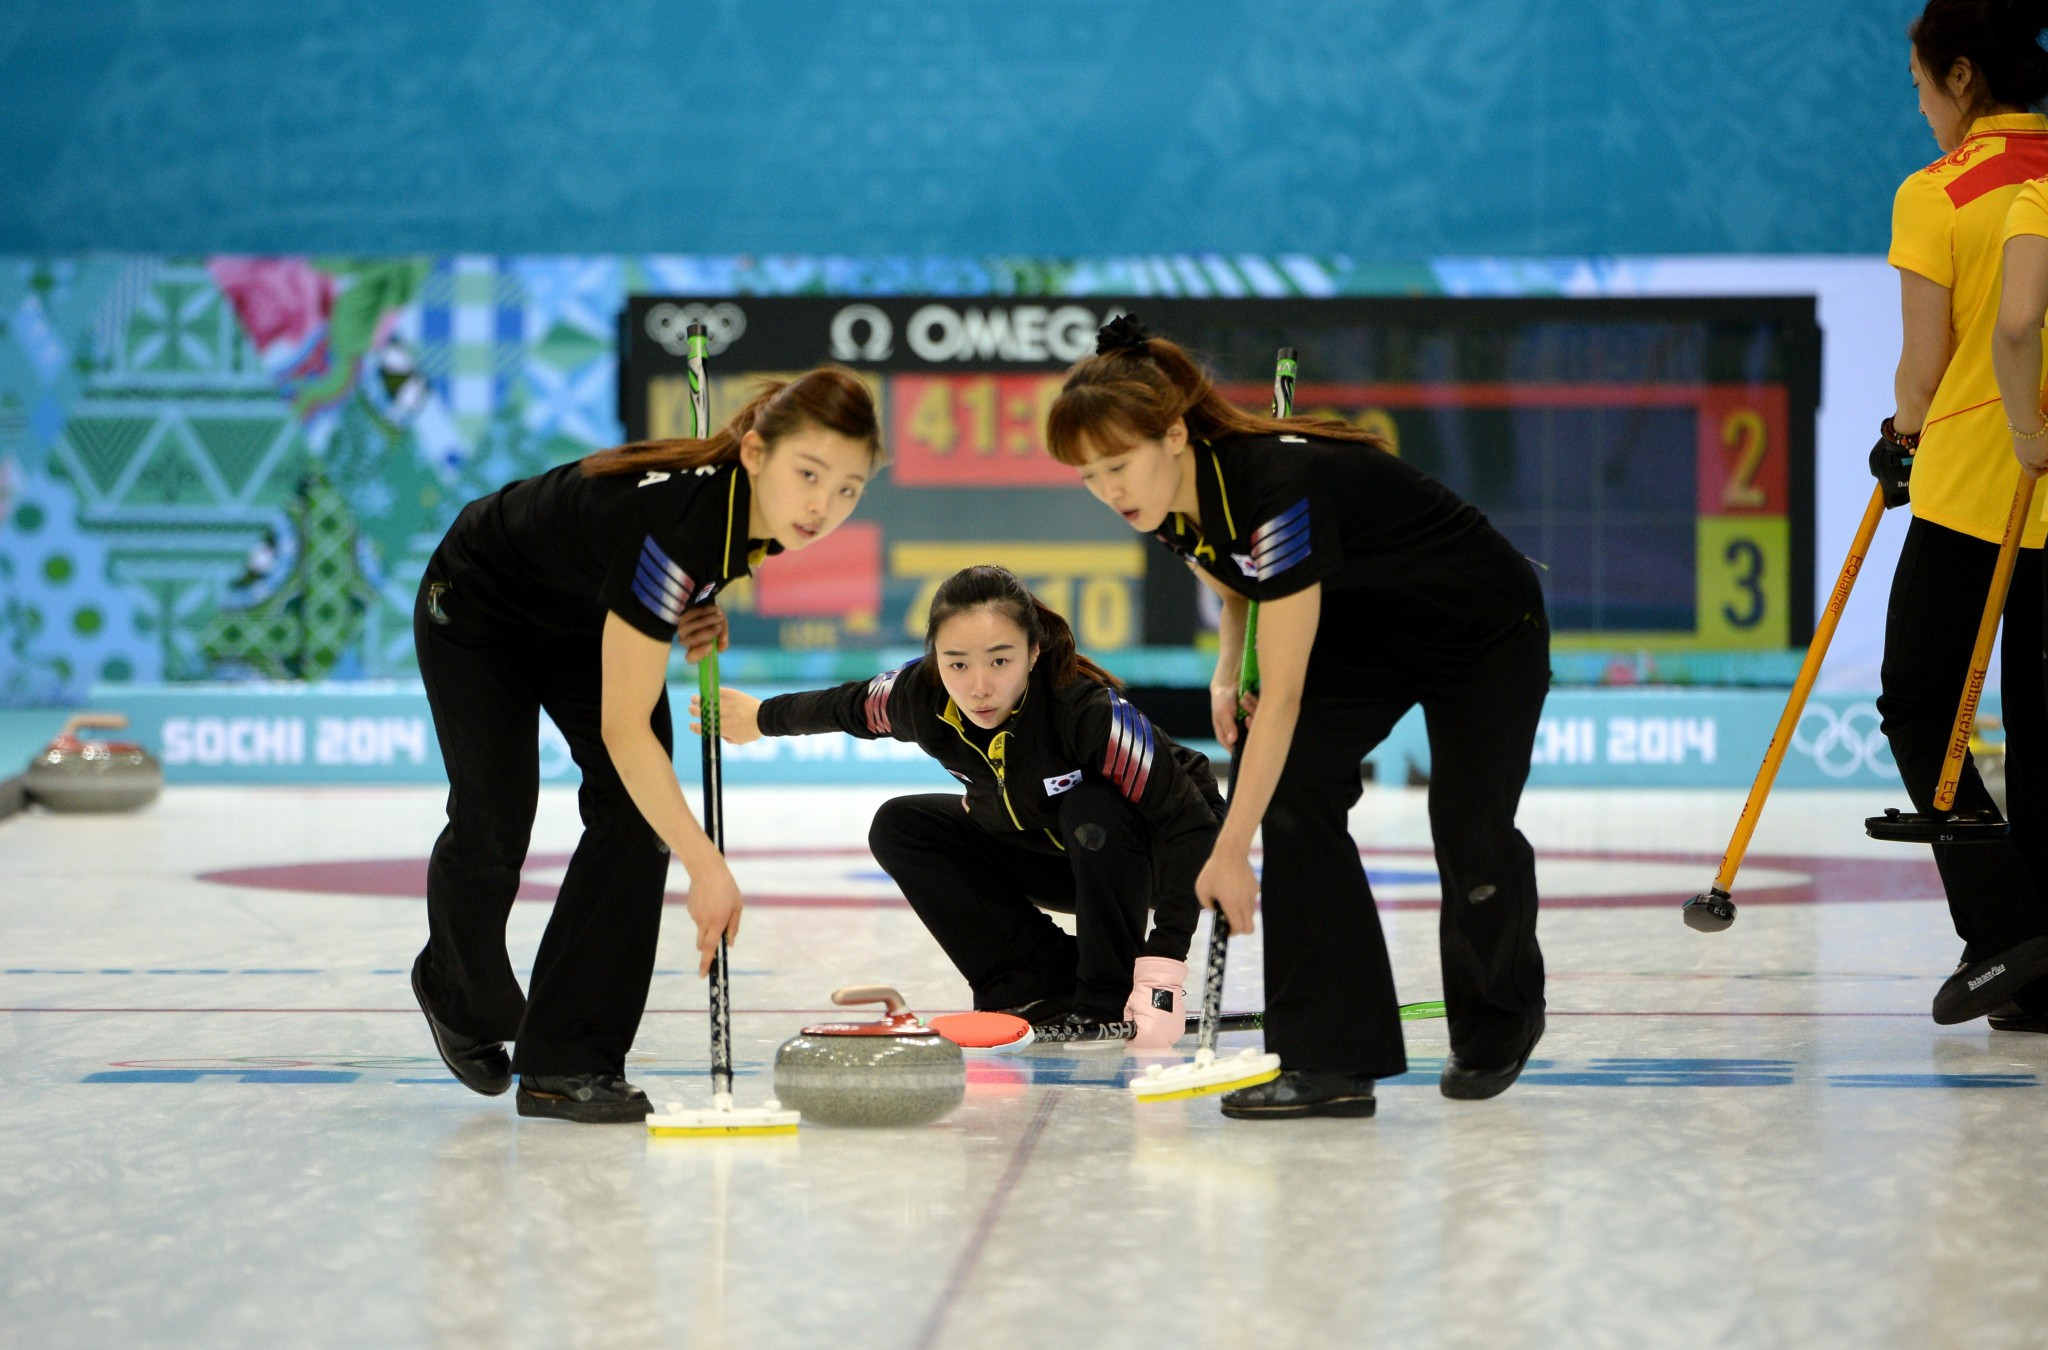 South Korea are targeting an improvement on their eighth place finish at Sochi 2014 ©Getty Images